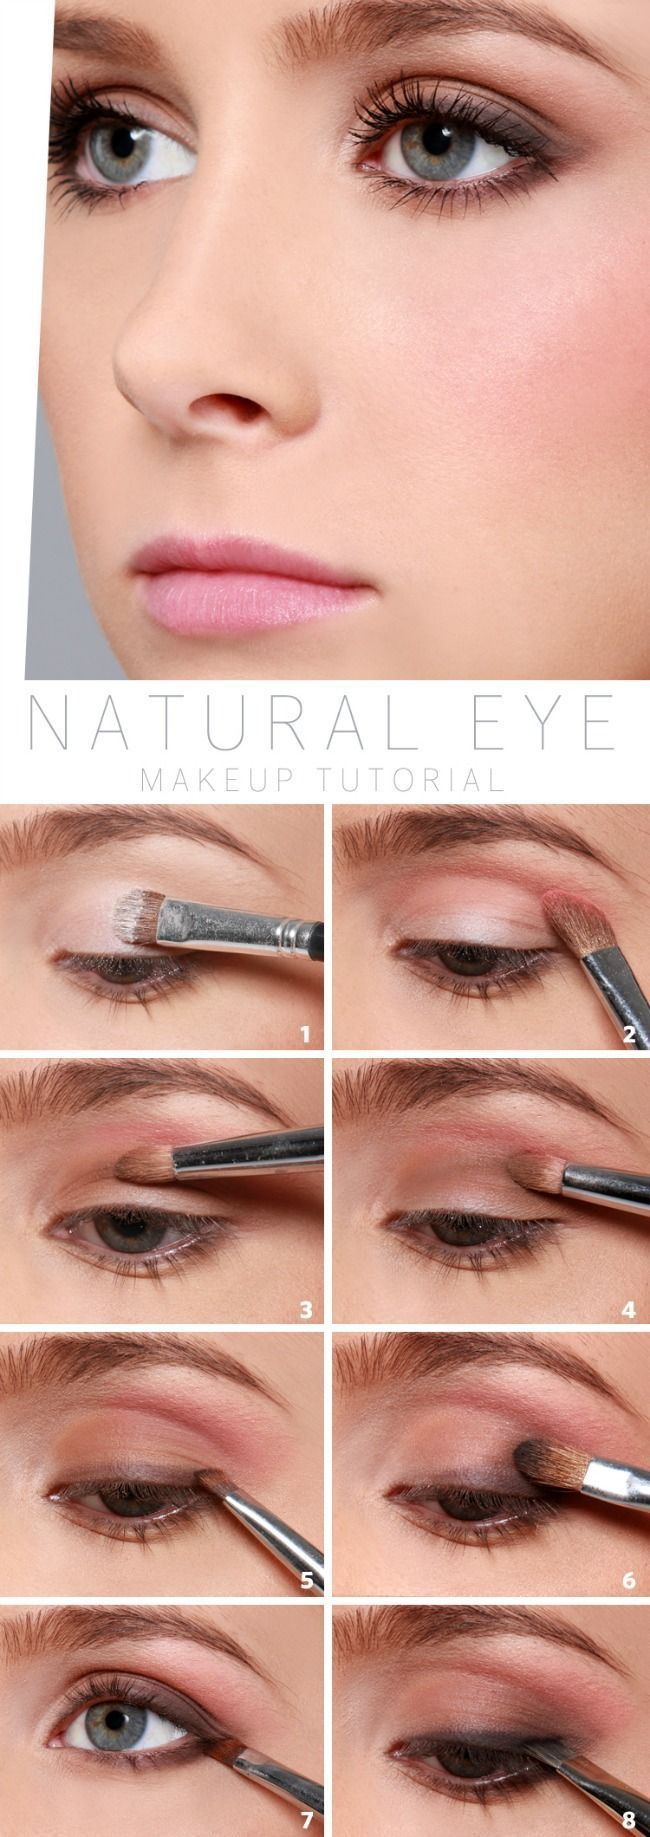 Makeup ideas 2017 2018 the 11 best eye makeup tips and tricks the 11 best eye makeup tips and tricks natural eye makeup tutorial baditri Choice Image